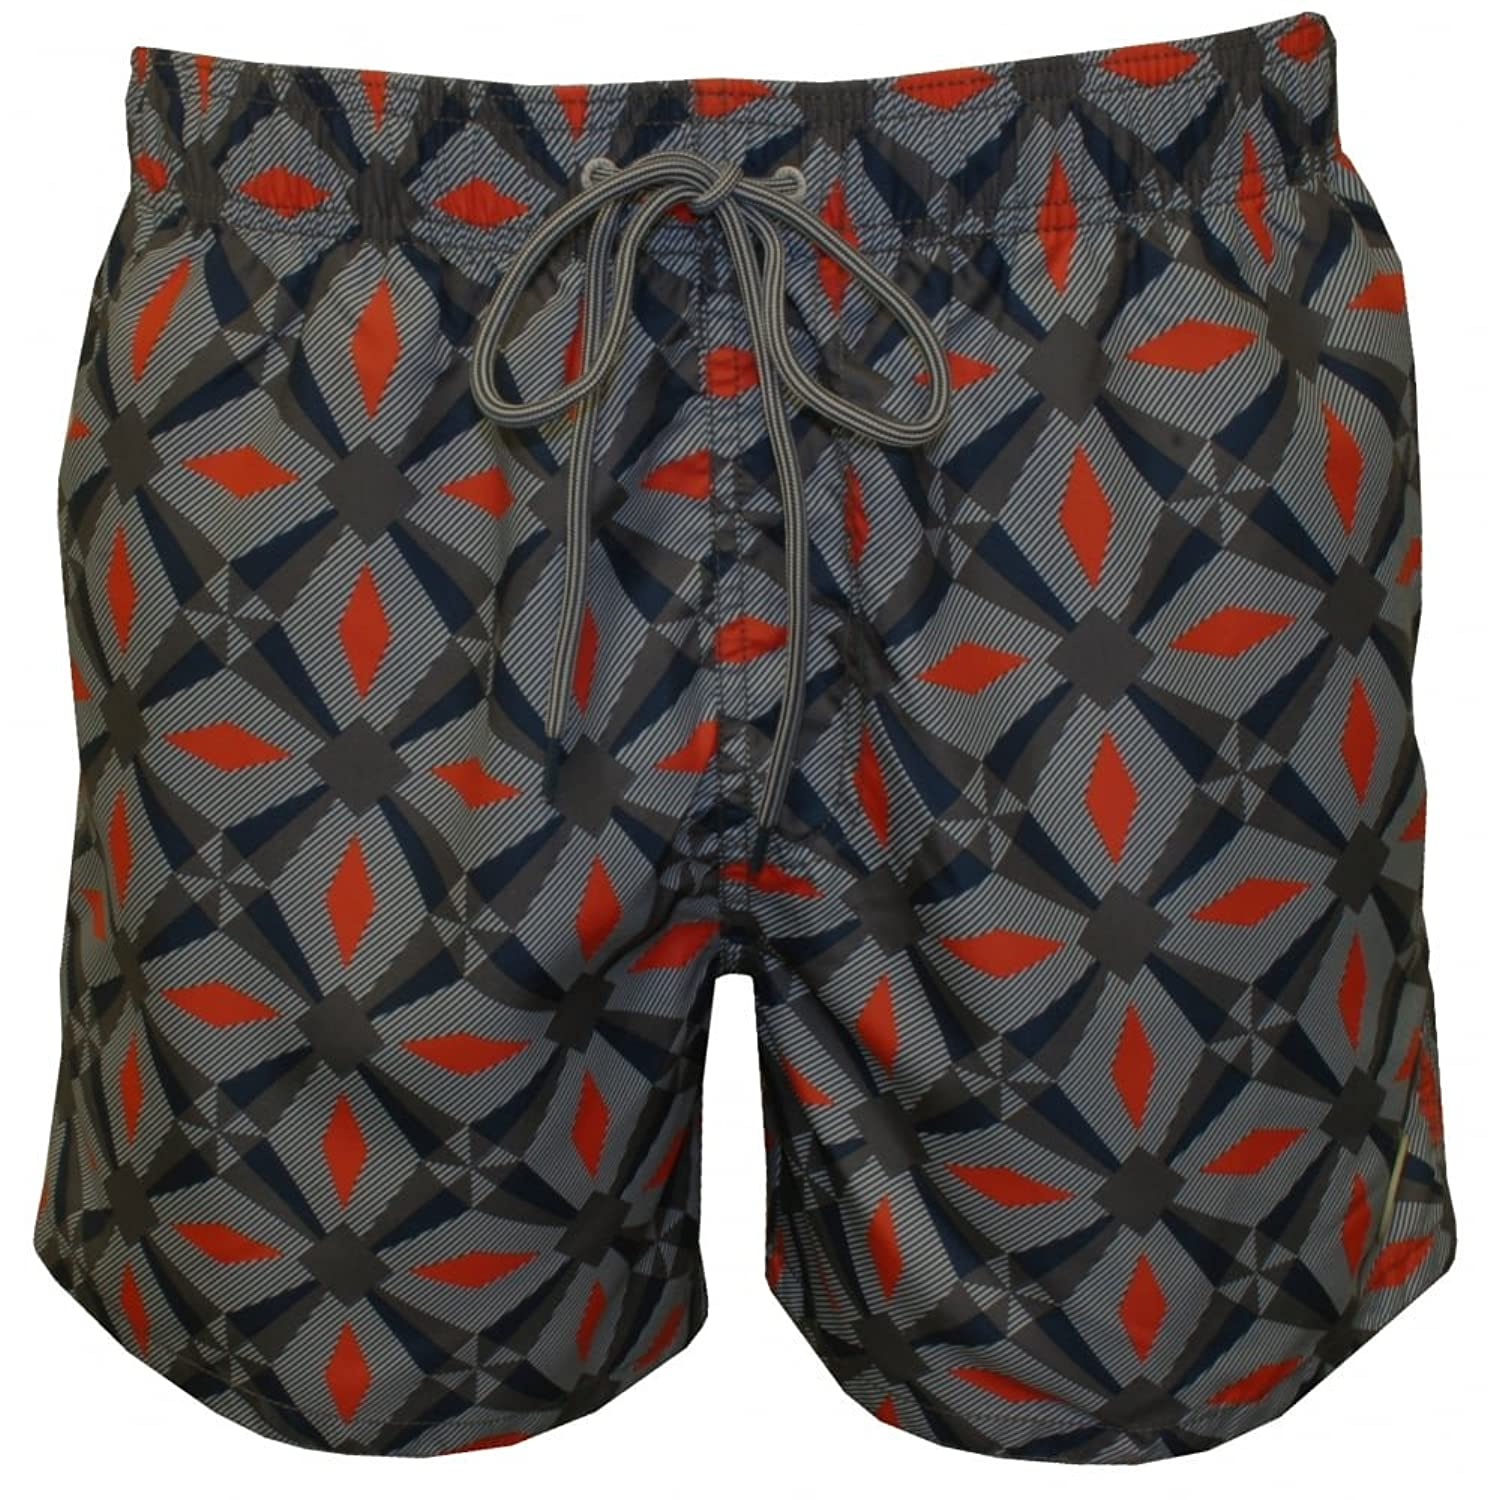 Ted Baker Oversized Geo Print Men's Swim Shorts, Navy/Orange X-Large